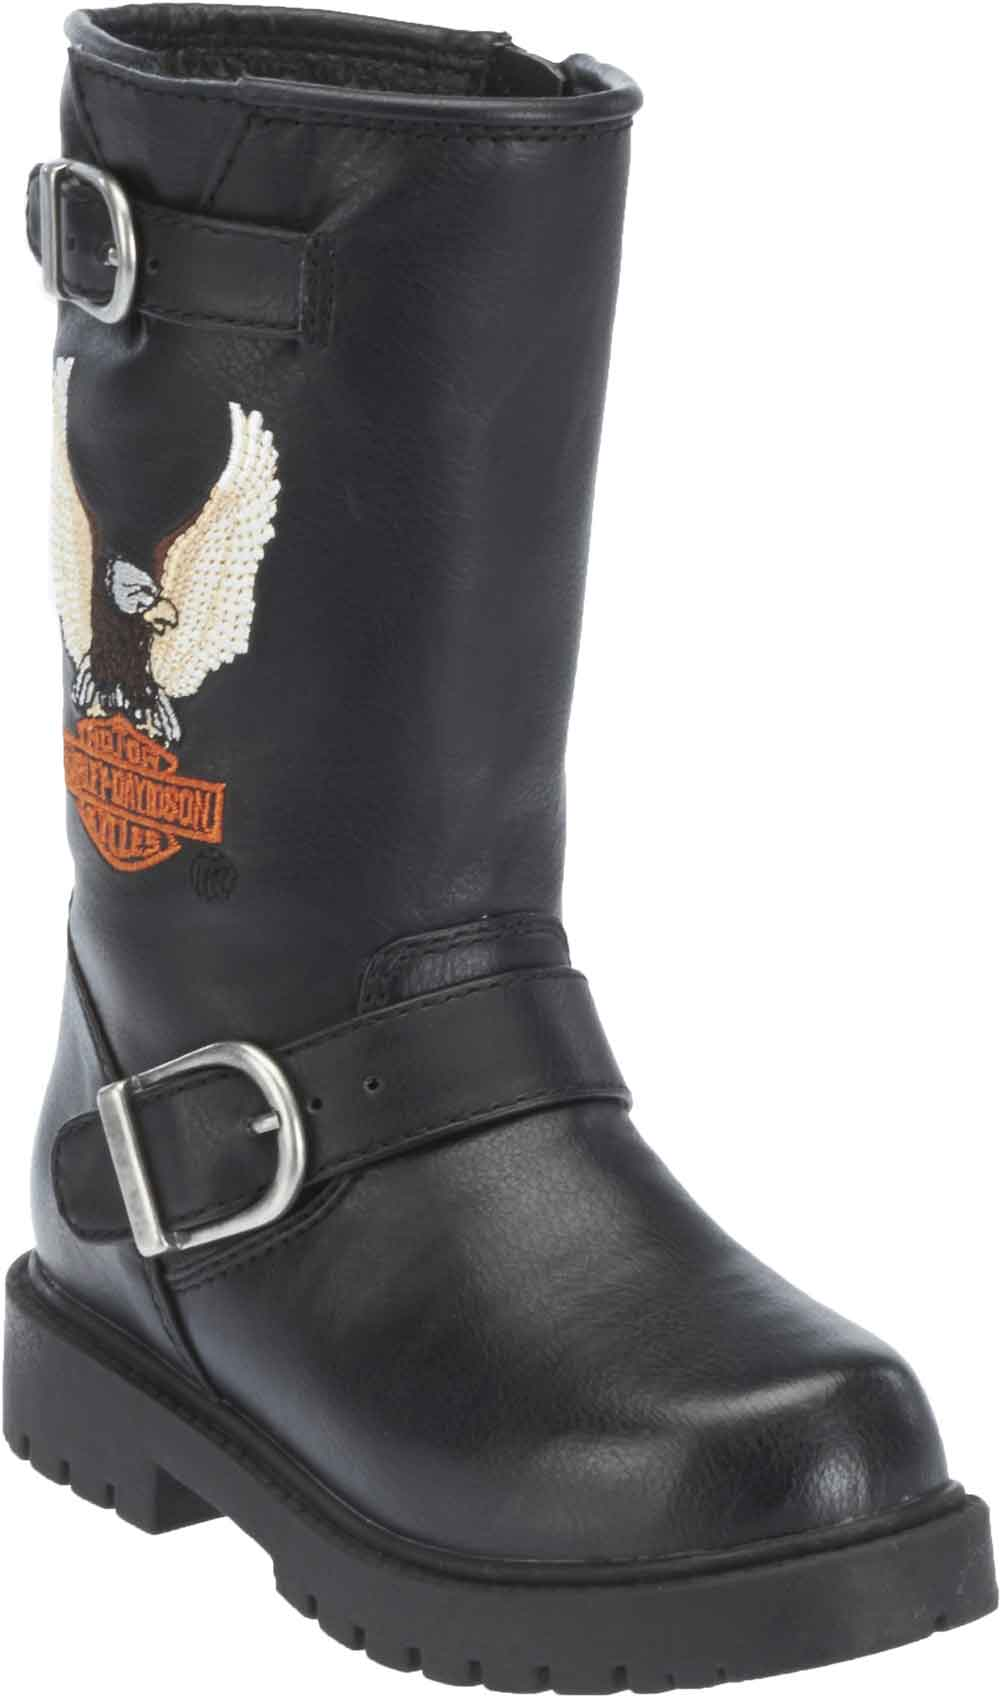 Harley-Davidson Little and Big Kid's Black Faux Leather ...